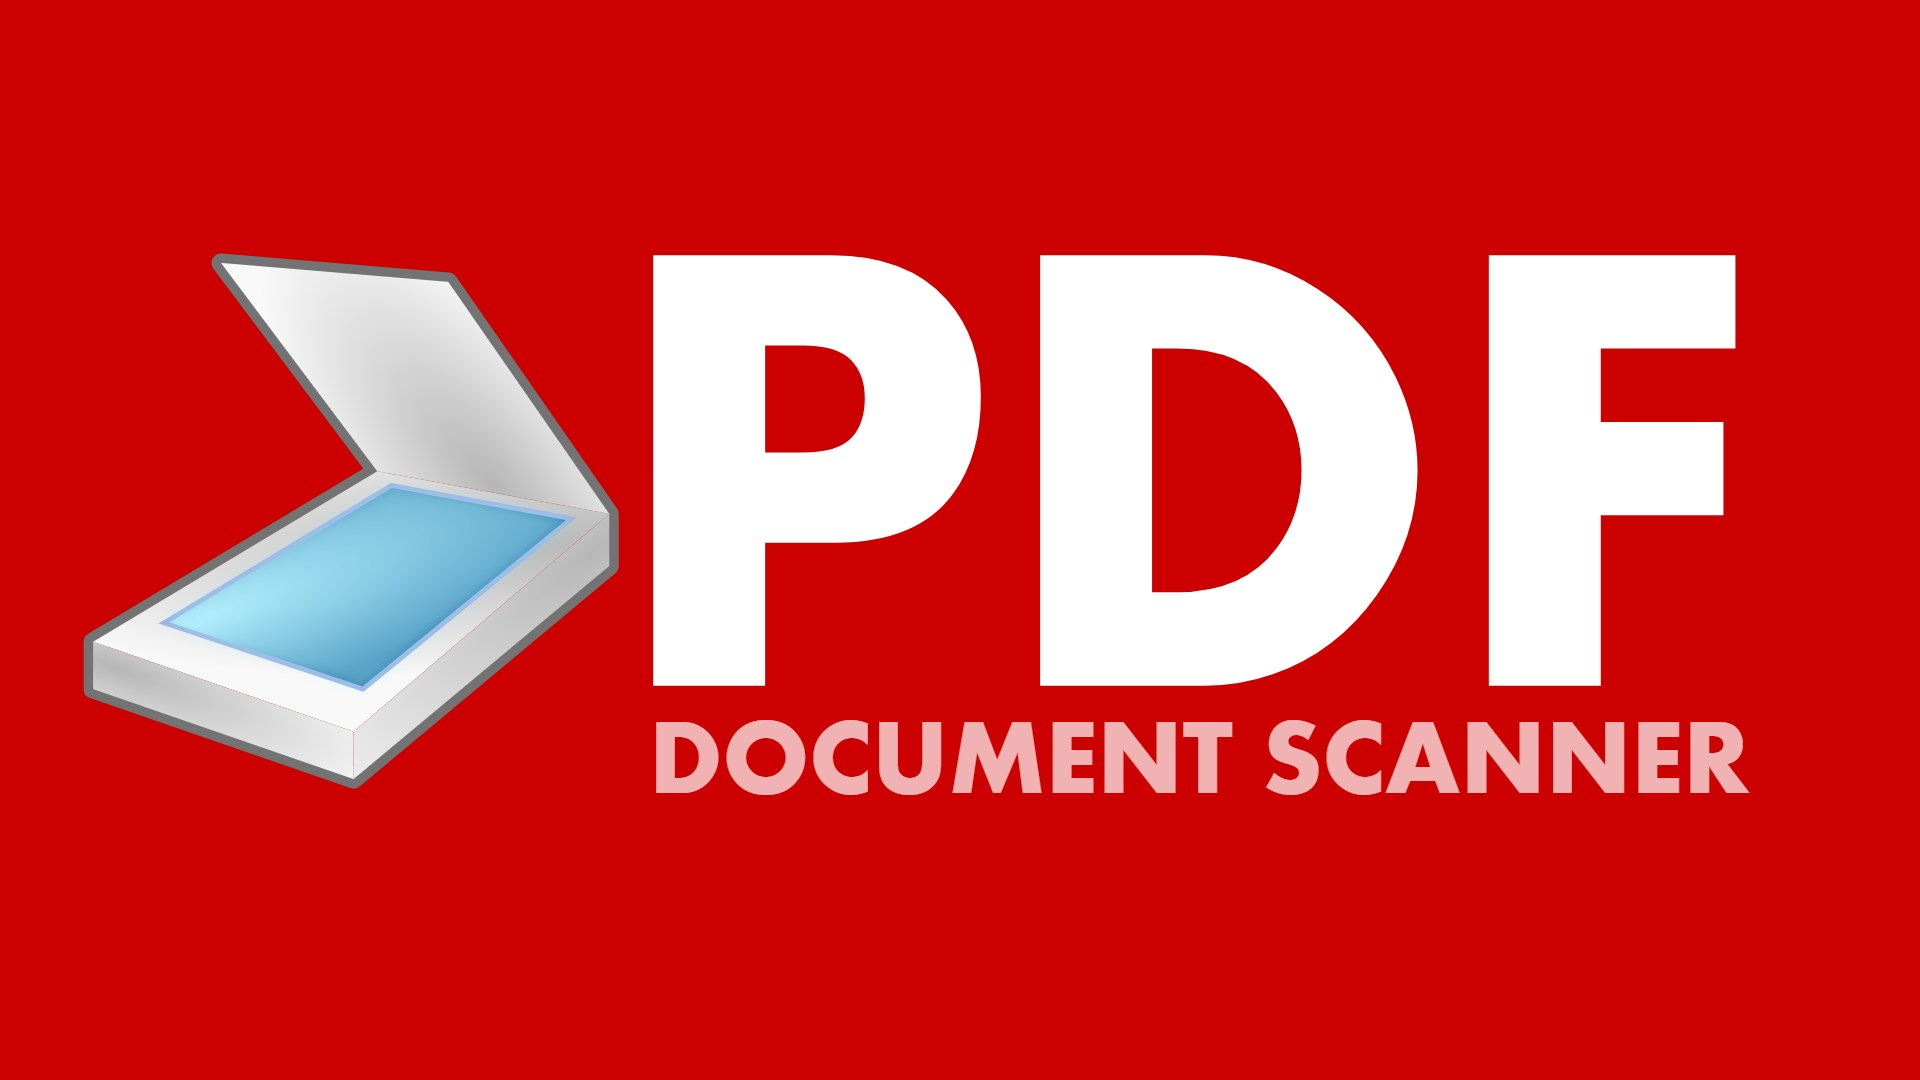 Smart doc scanner: free pdf scanner app apk download | apkpure. Co.